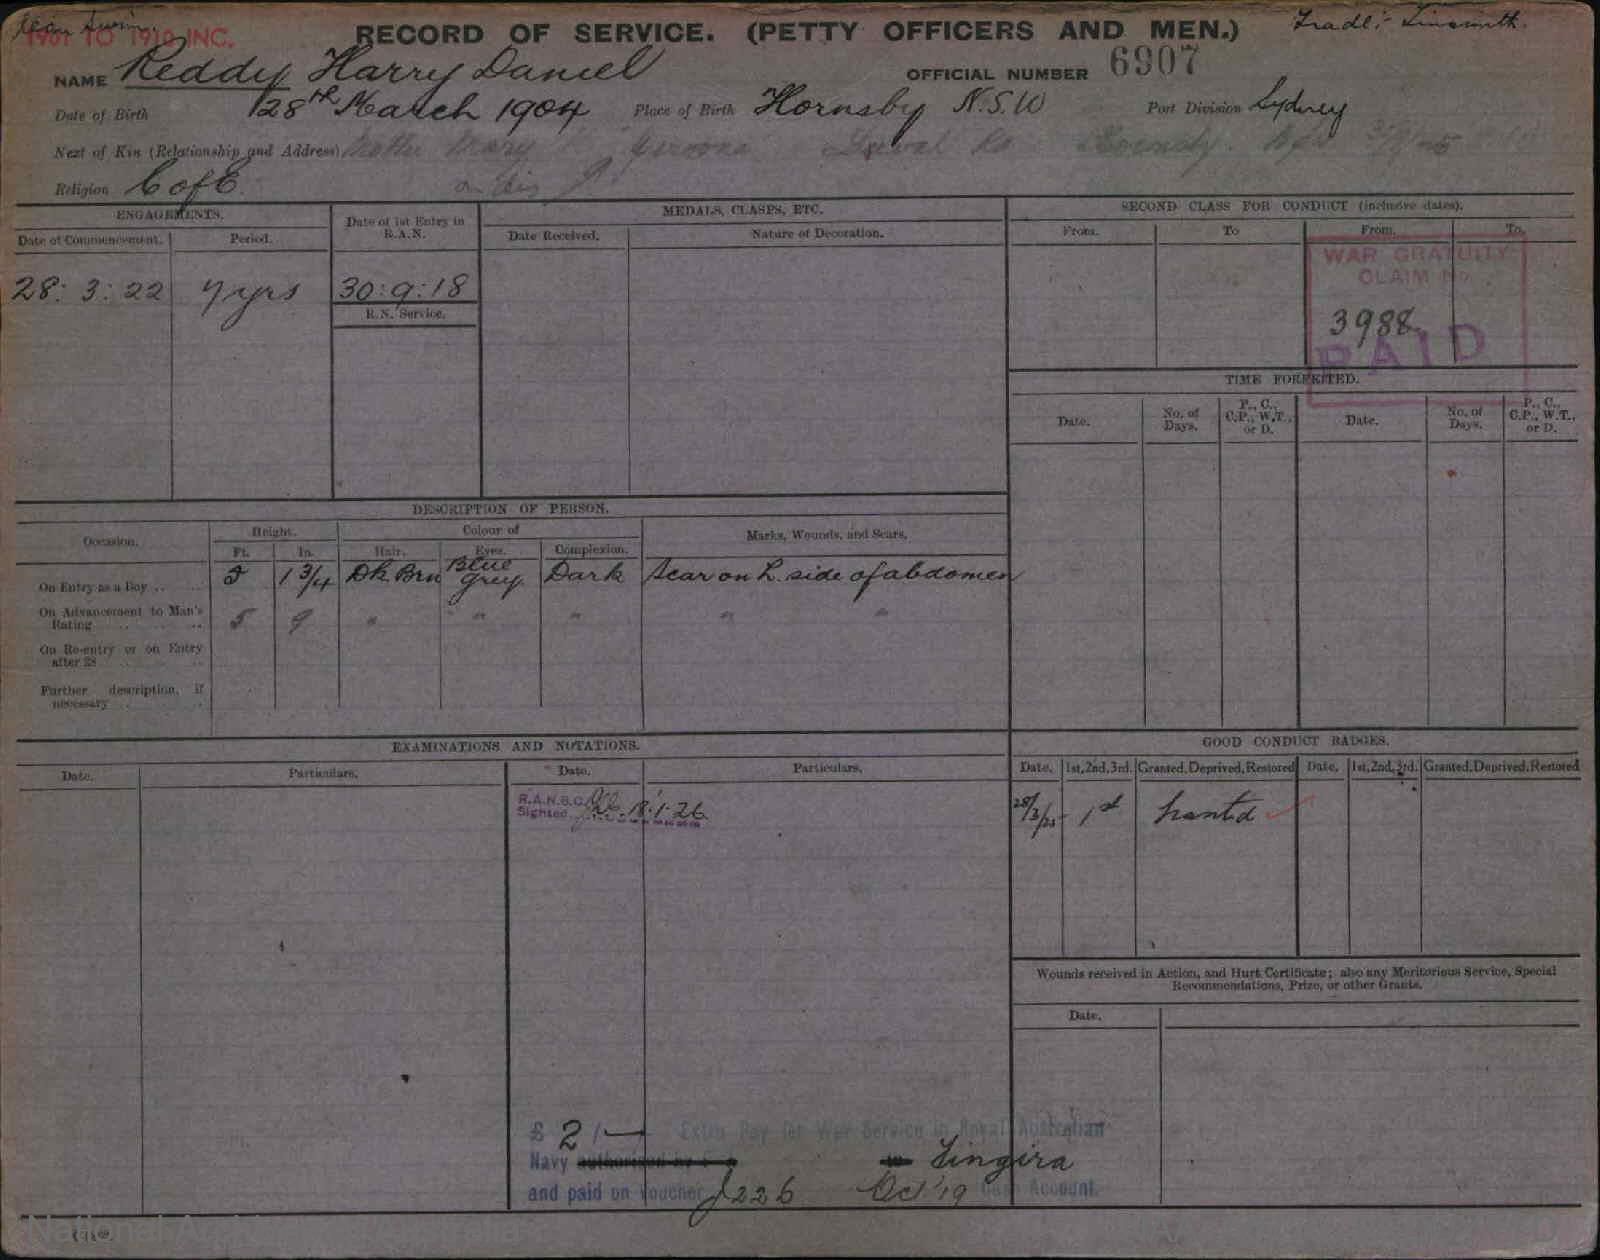 REDDY HARRY DANIEL : Service Number - 6907 : Date of birth - 28 Mar 1904 : Place of birth - HORNSBY NSW : Place of enlistment - SYDNEY : Next of Kin - MARY